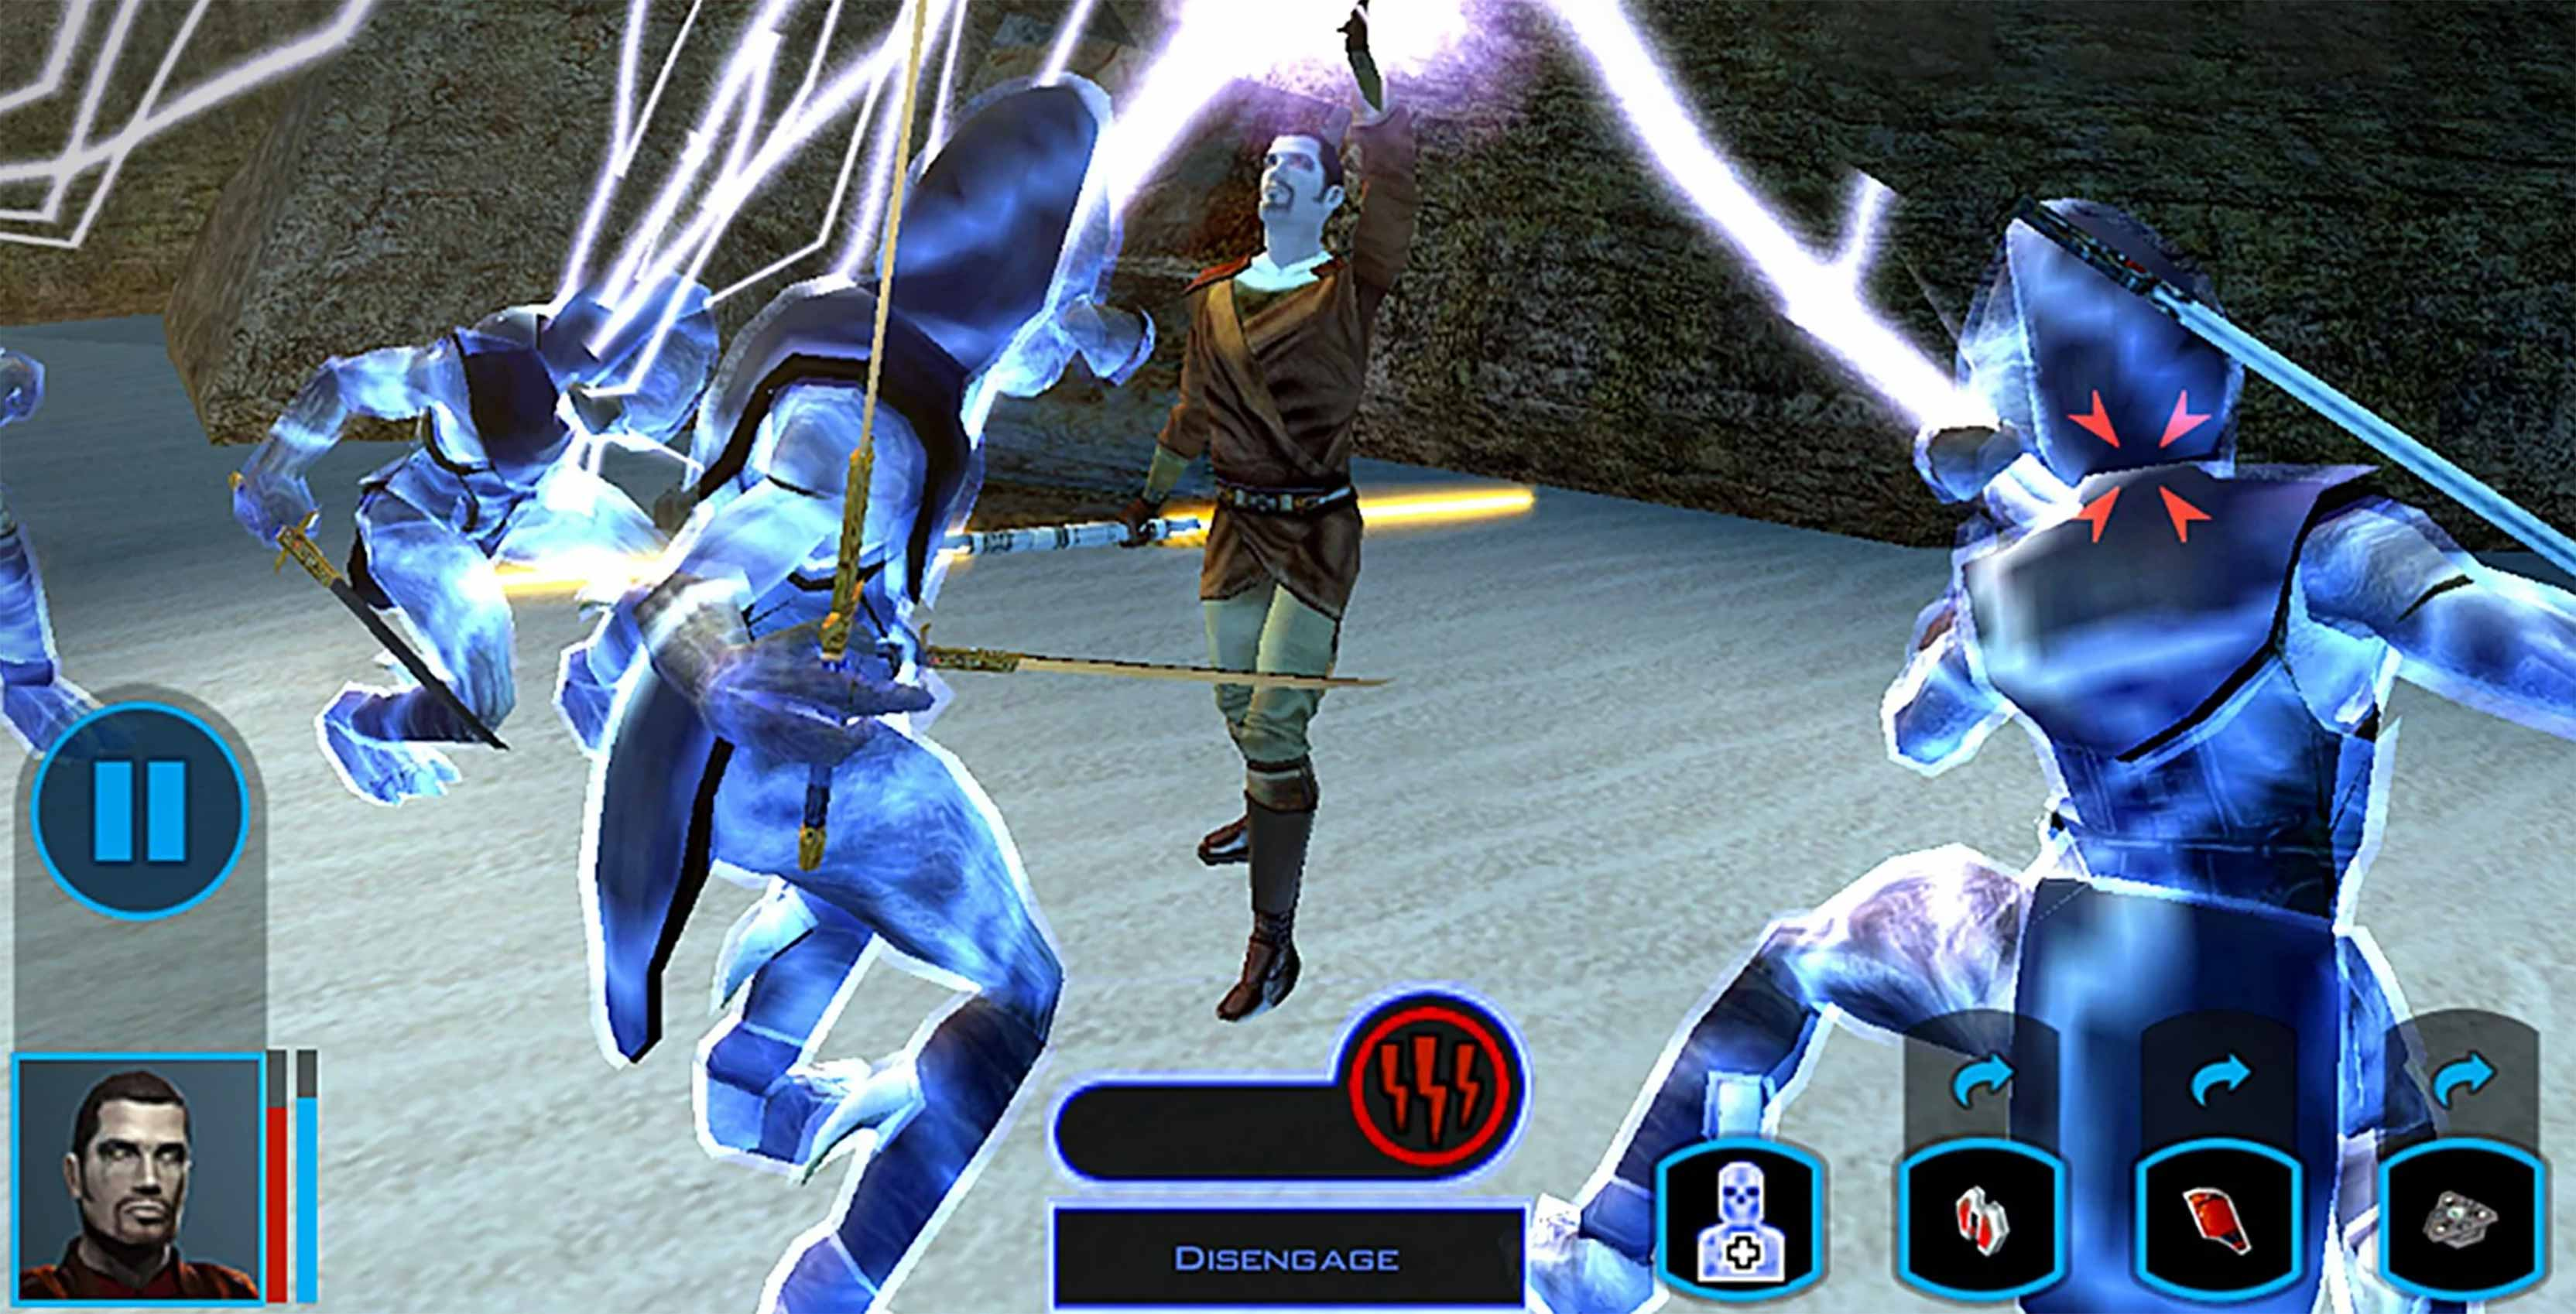 Star Wars KOTOR mobile